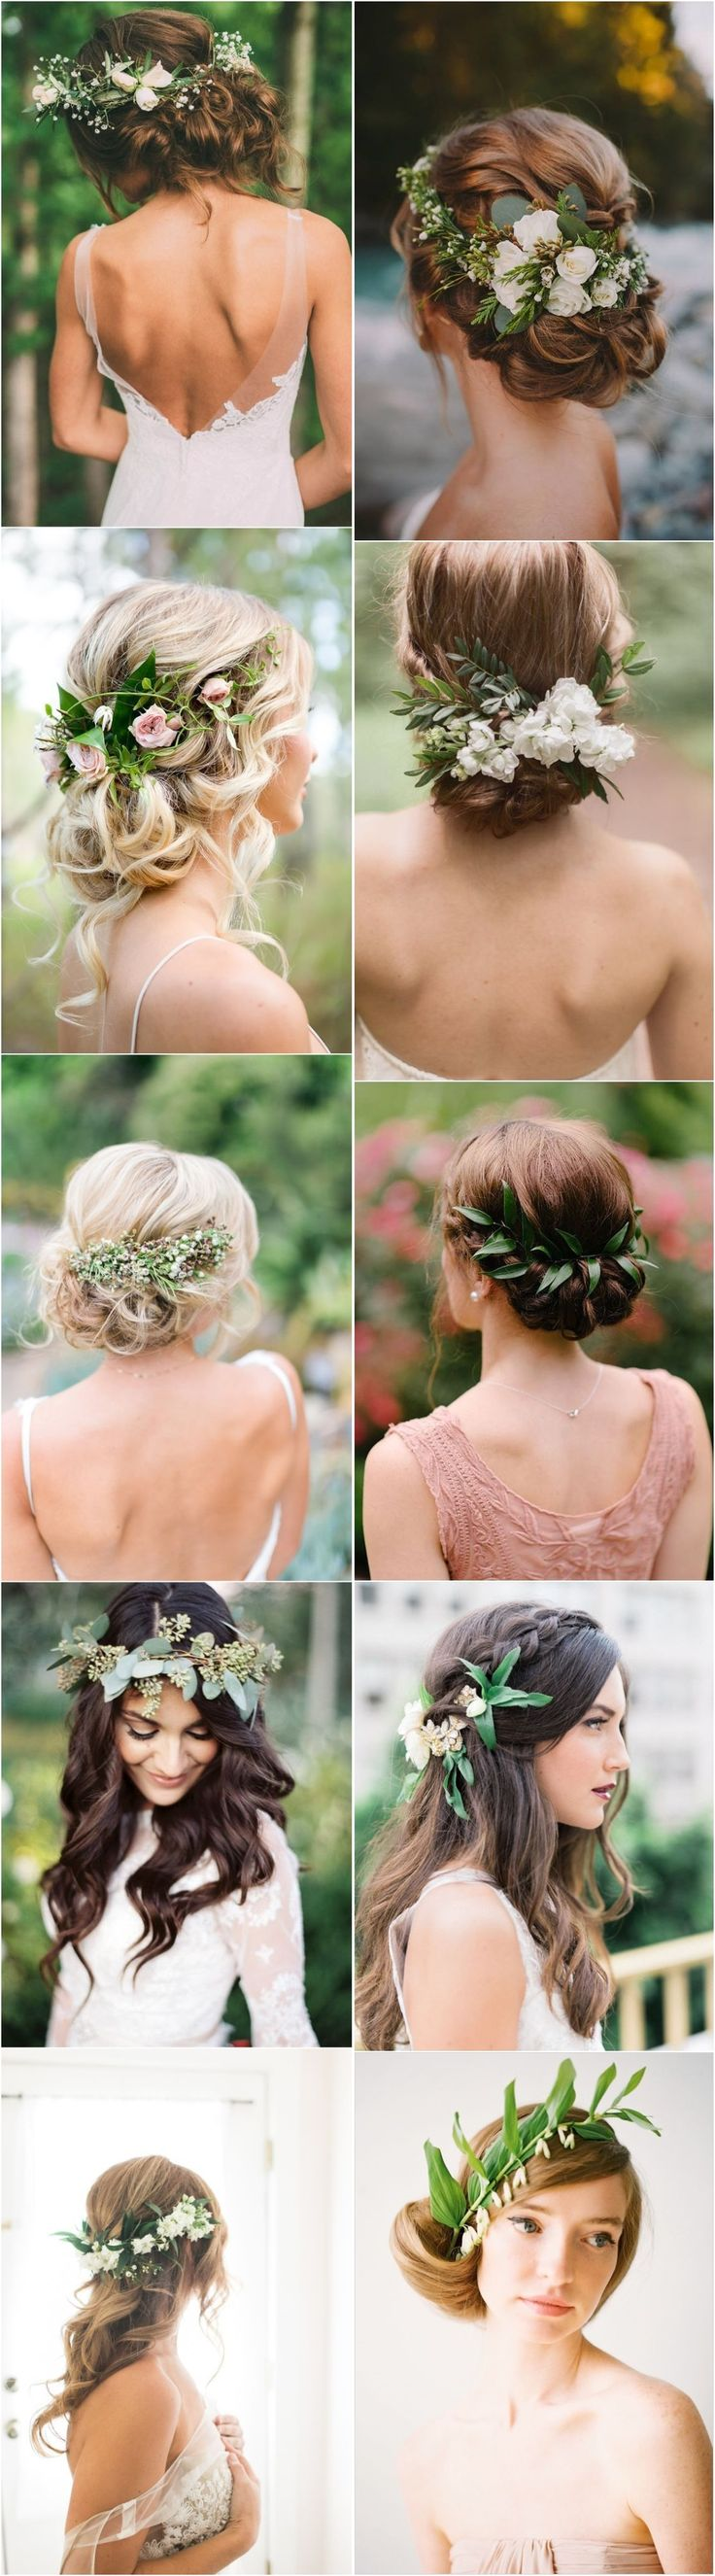 Greenery wedding hairstyles and wedding updos with green flowers / #wedding #wed...